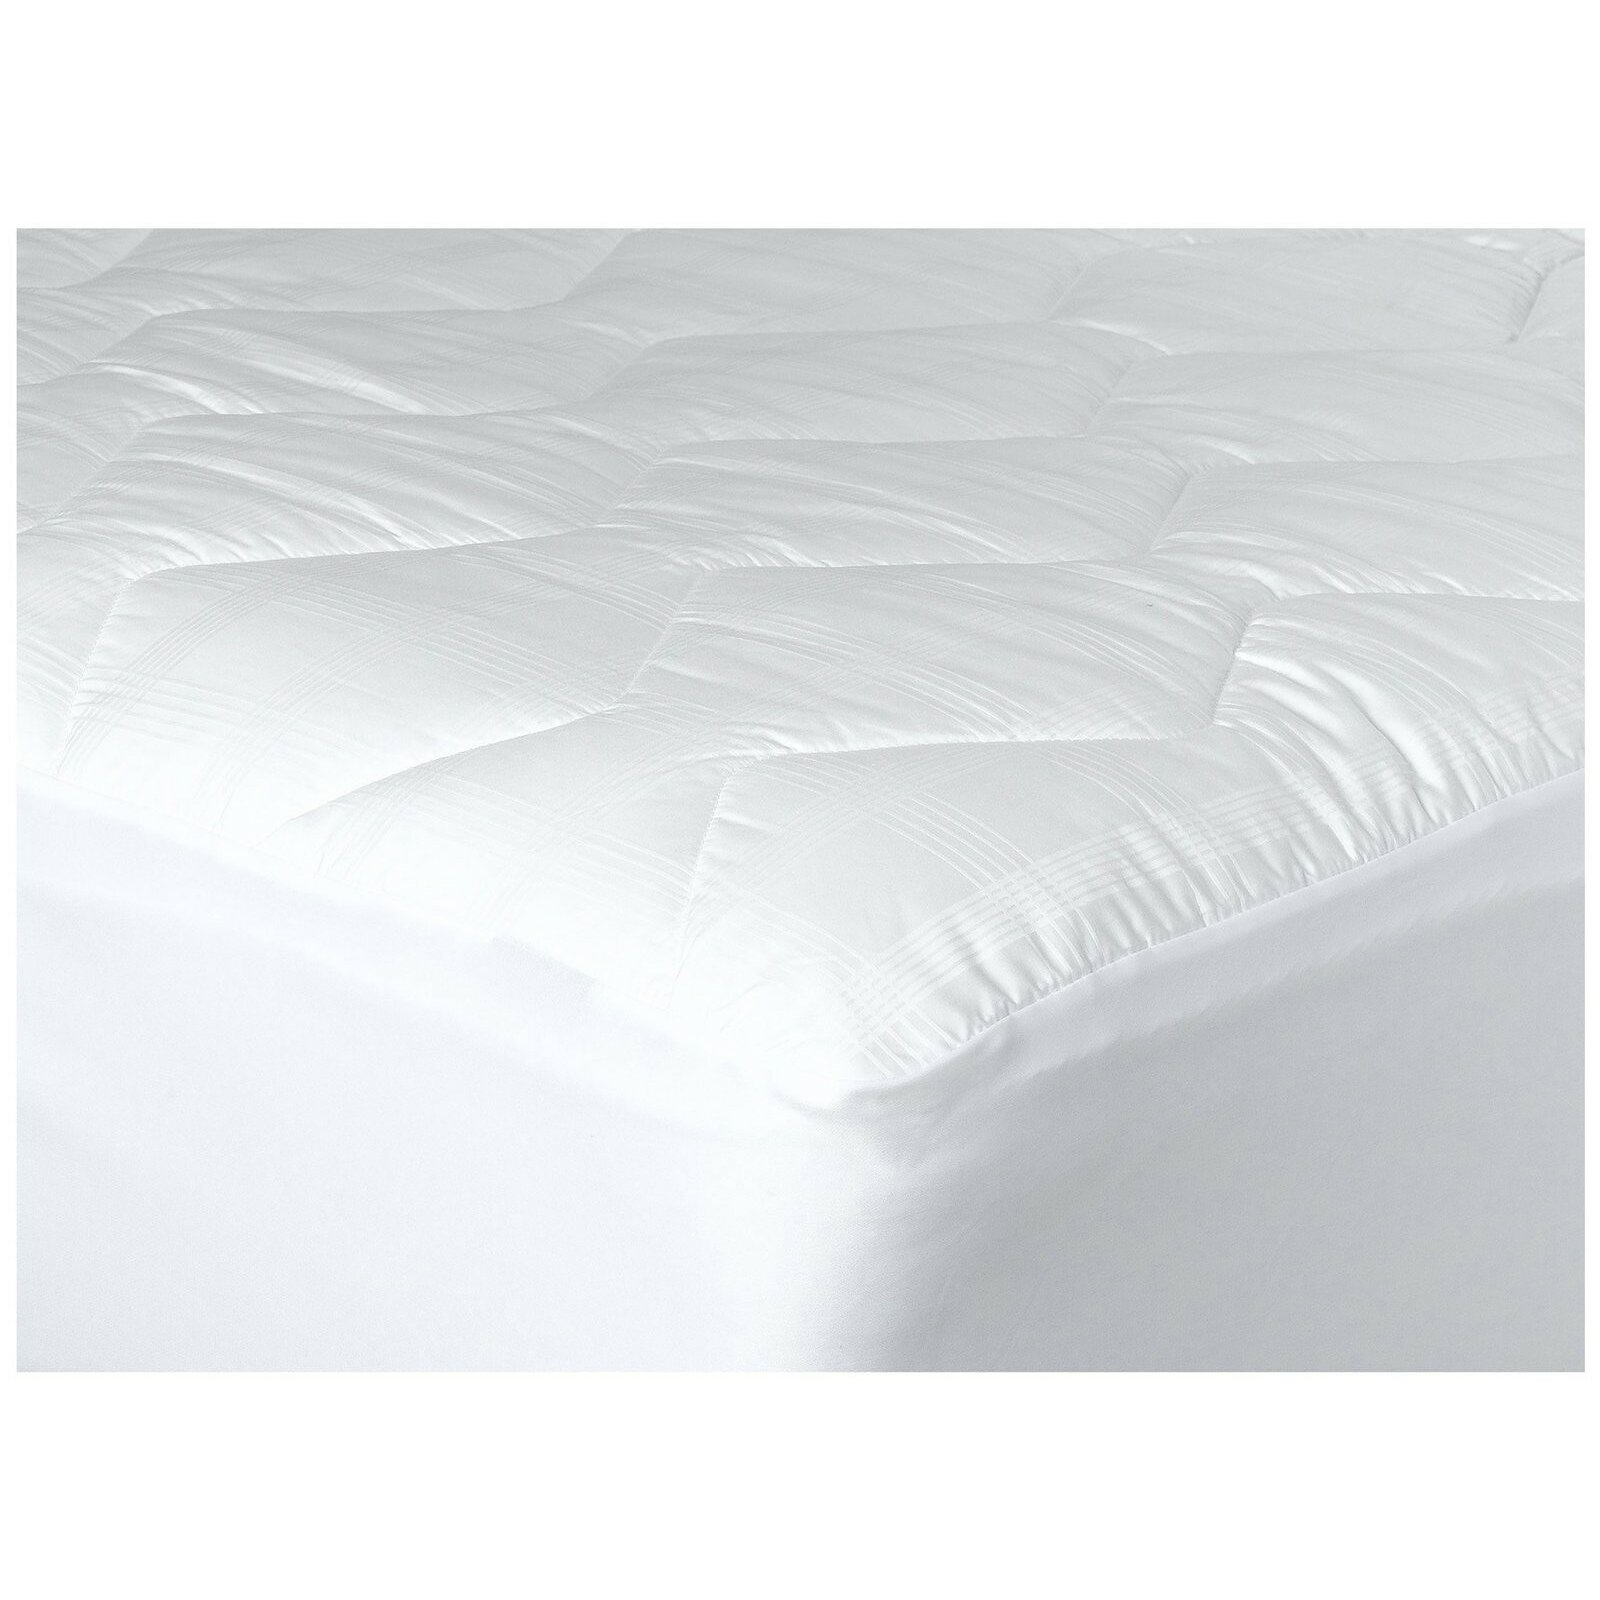 Deluxe fort Mattress Pad & Reviews